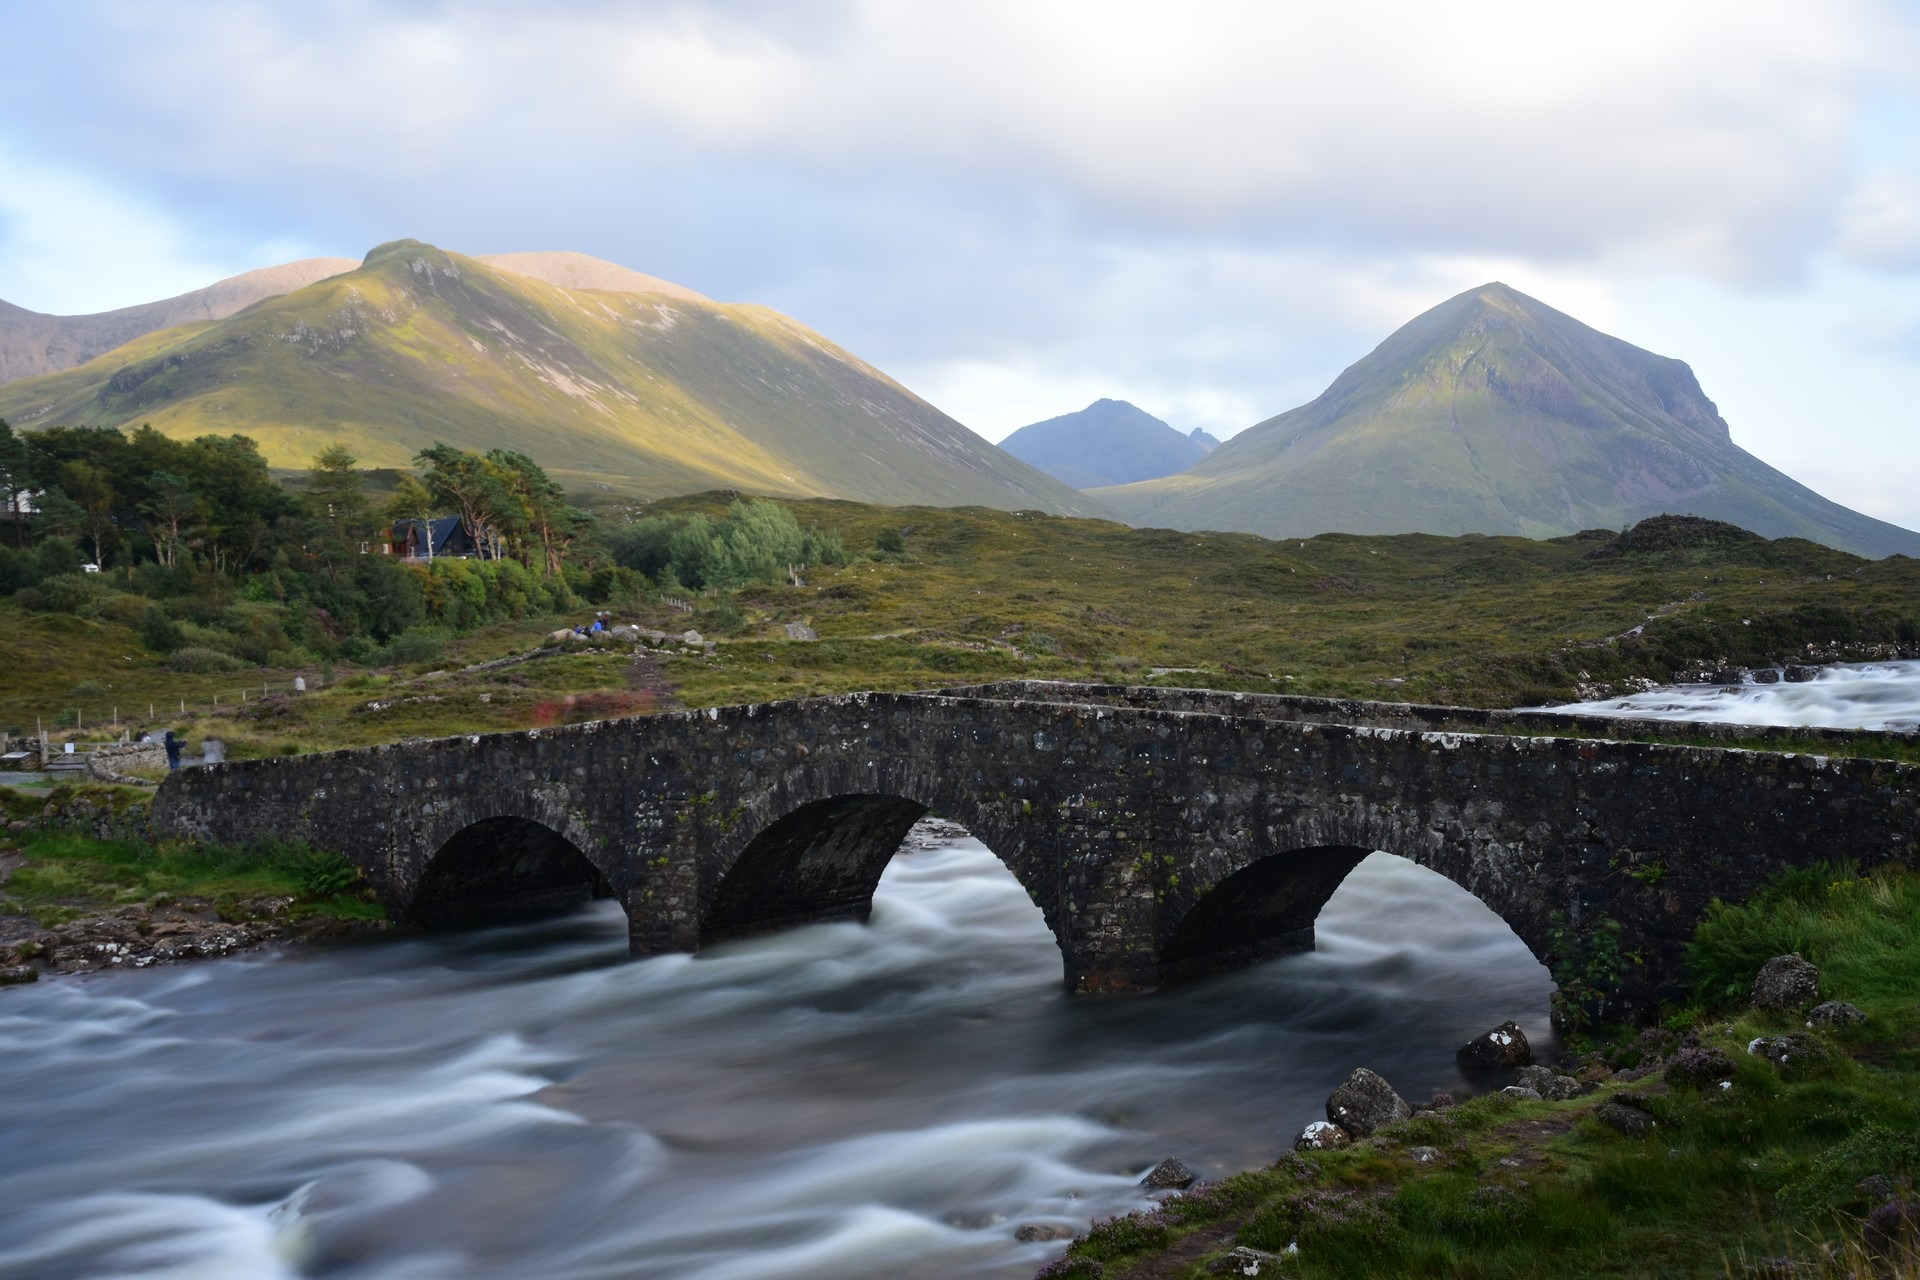 Scotland 2019 – day 4, Isle of Sky – Cill Chriosd, Elgol beach, Old Bridge of Sligachan and Fairy Pools Glen